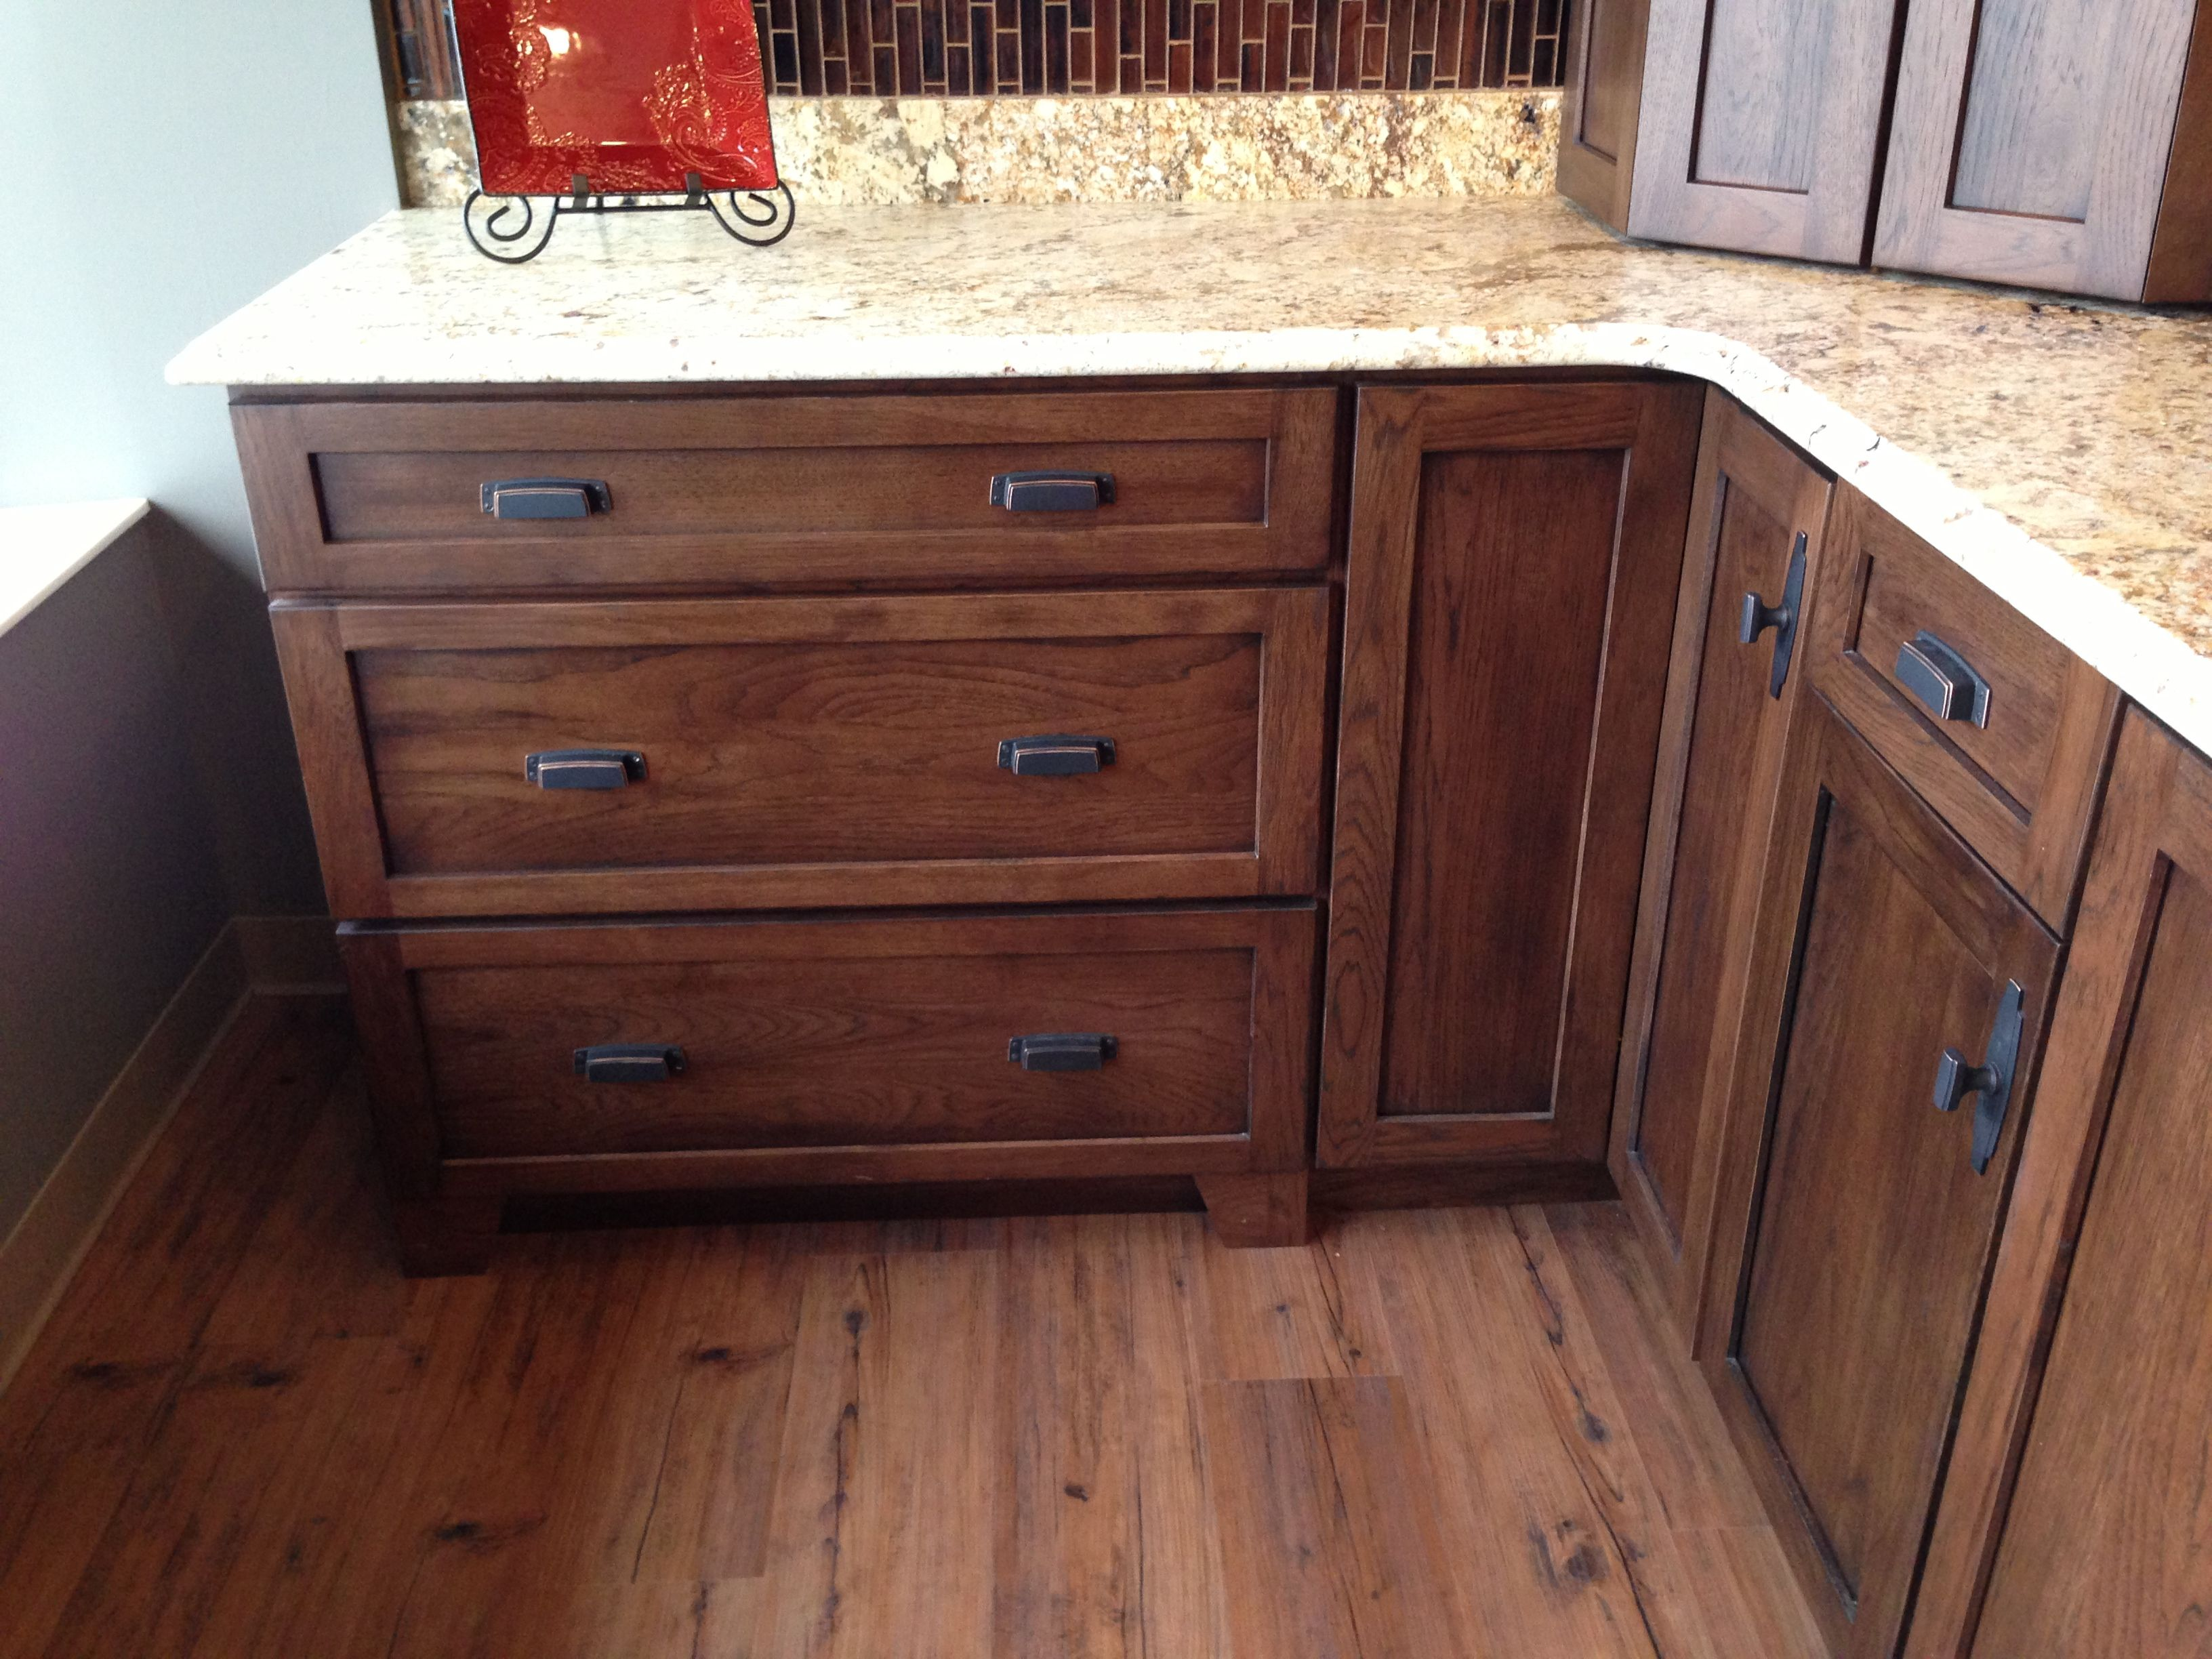 Dark Hickory Shaker Style Cabinets For Bathroom Kitchen - Shaker style furniture for your kitchen cabinets